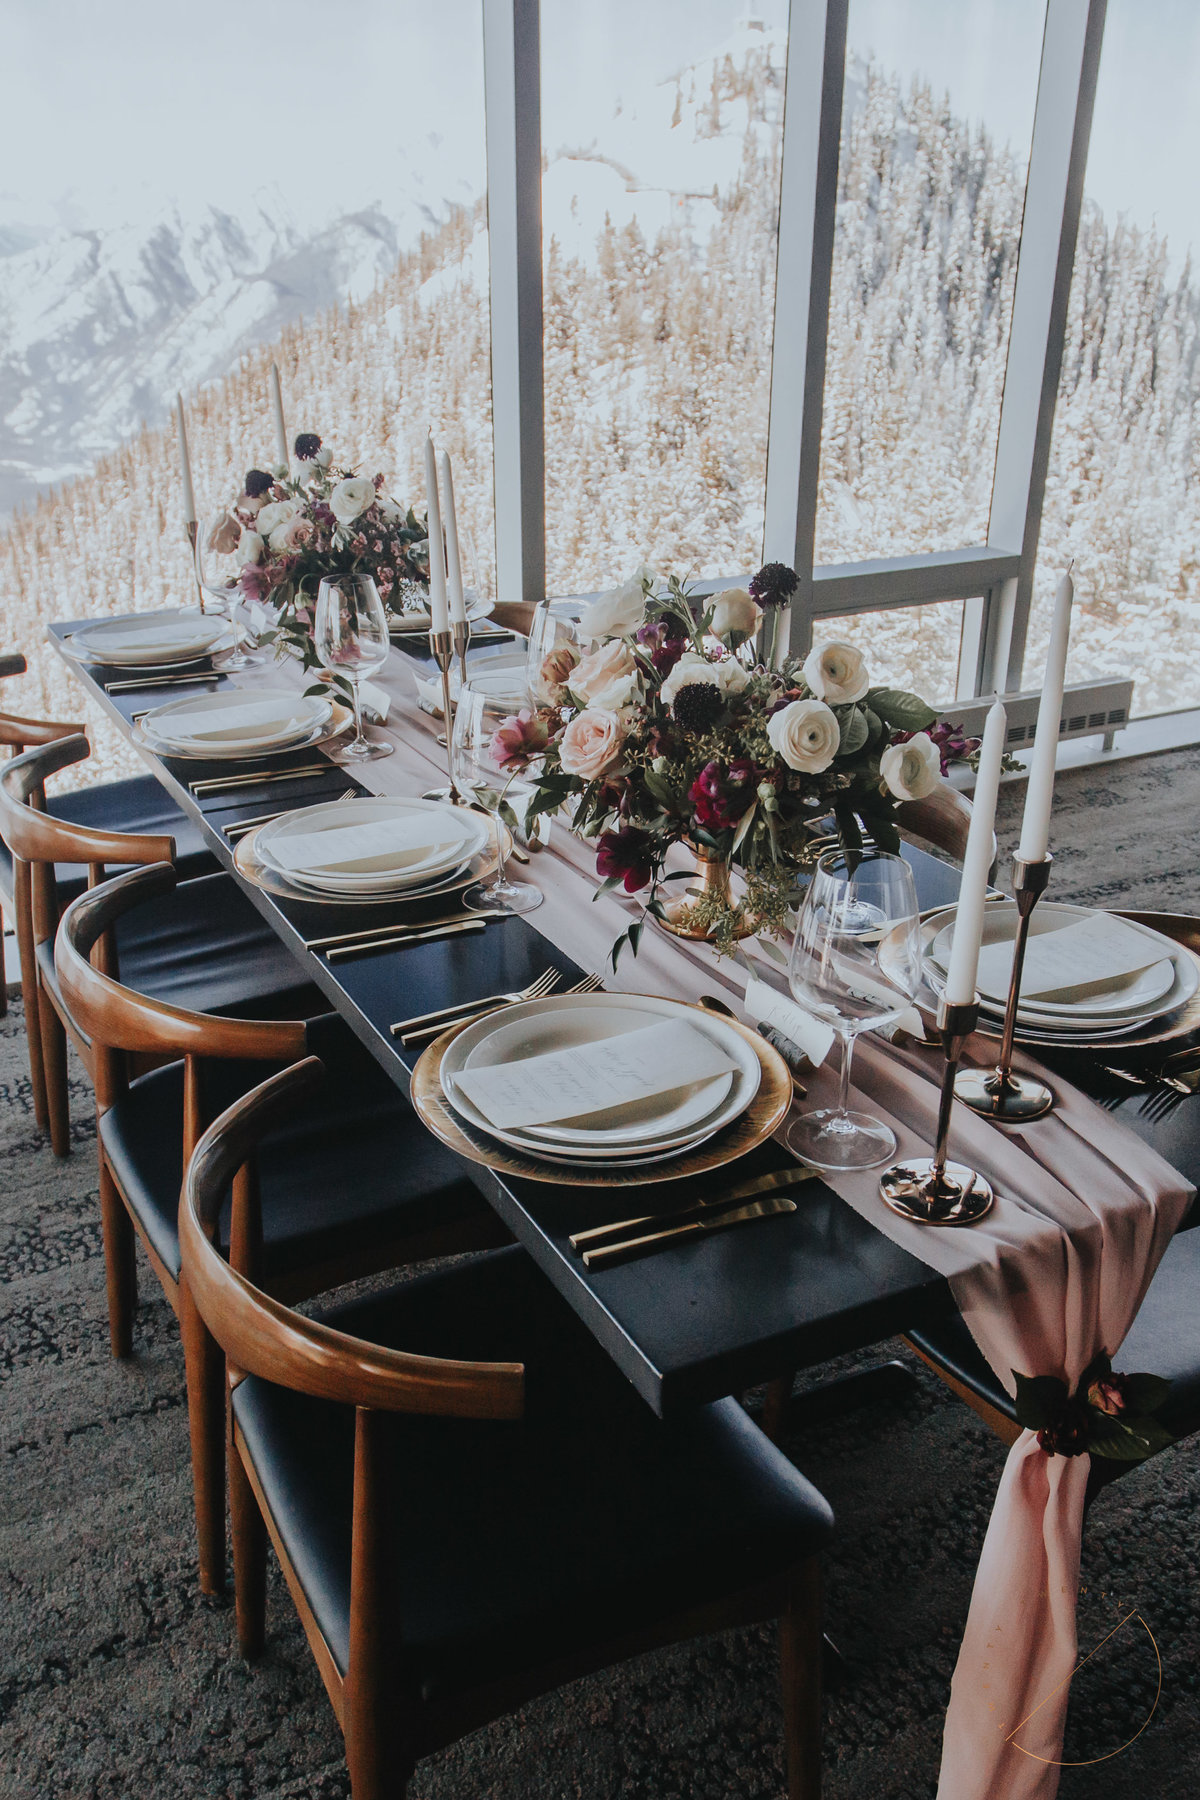 Table setting by Moments by Madeleine in Sky Bistro at Banff Gondola, taken by top Banff Wedding Photographer Lindsay Copeland of Twenty Twenty Photography